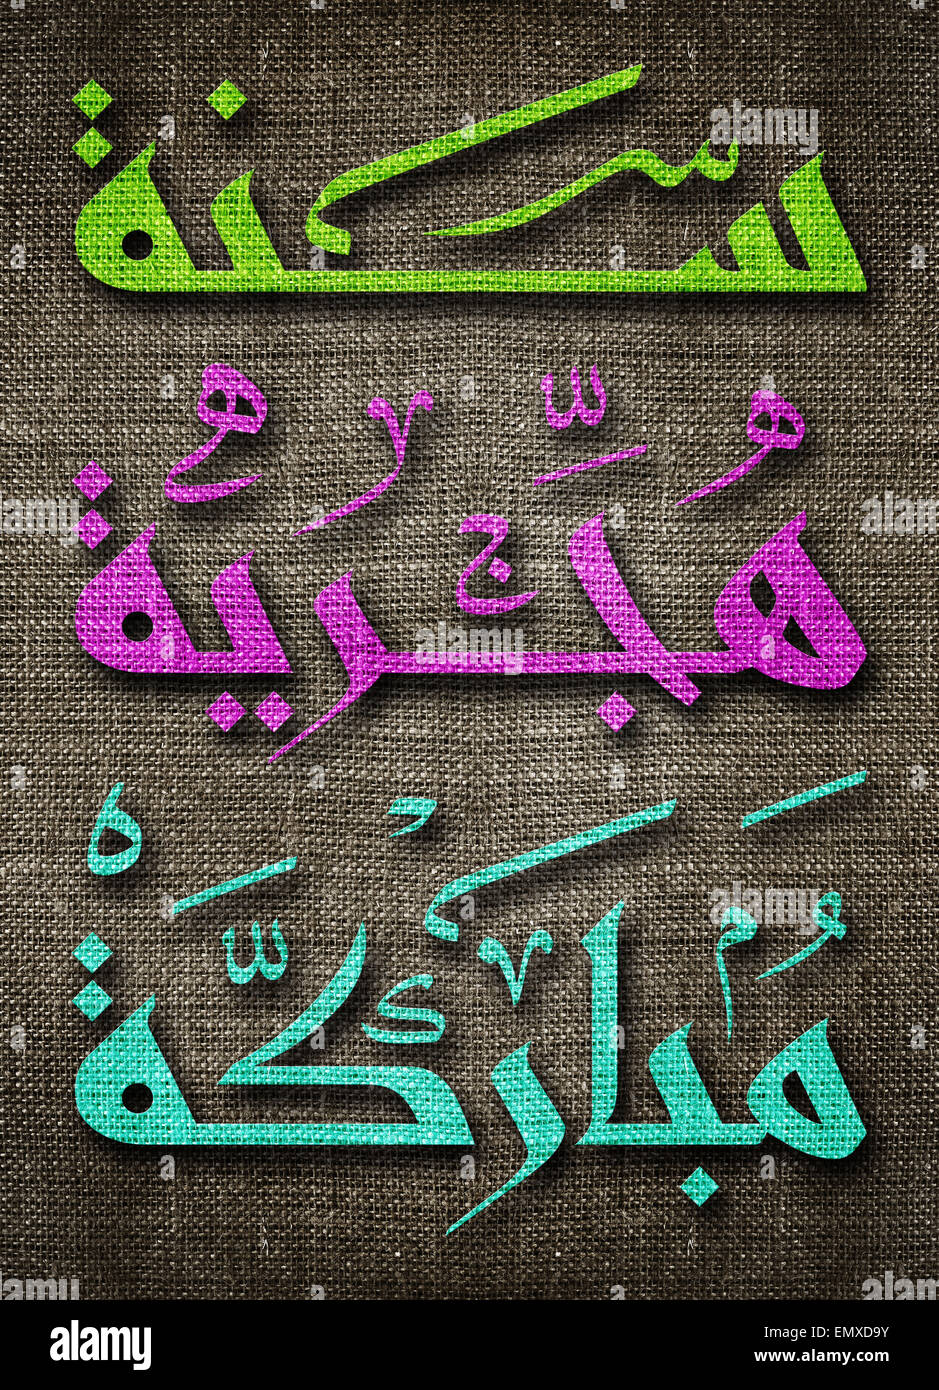 Islamic hijri new year greeting card with arabic calligraphy of islamic hijri new year greeting card with arabic calligraphy of text wishing you a blessed new year m4hsunfo